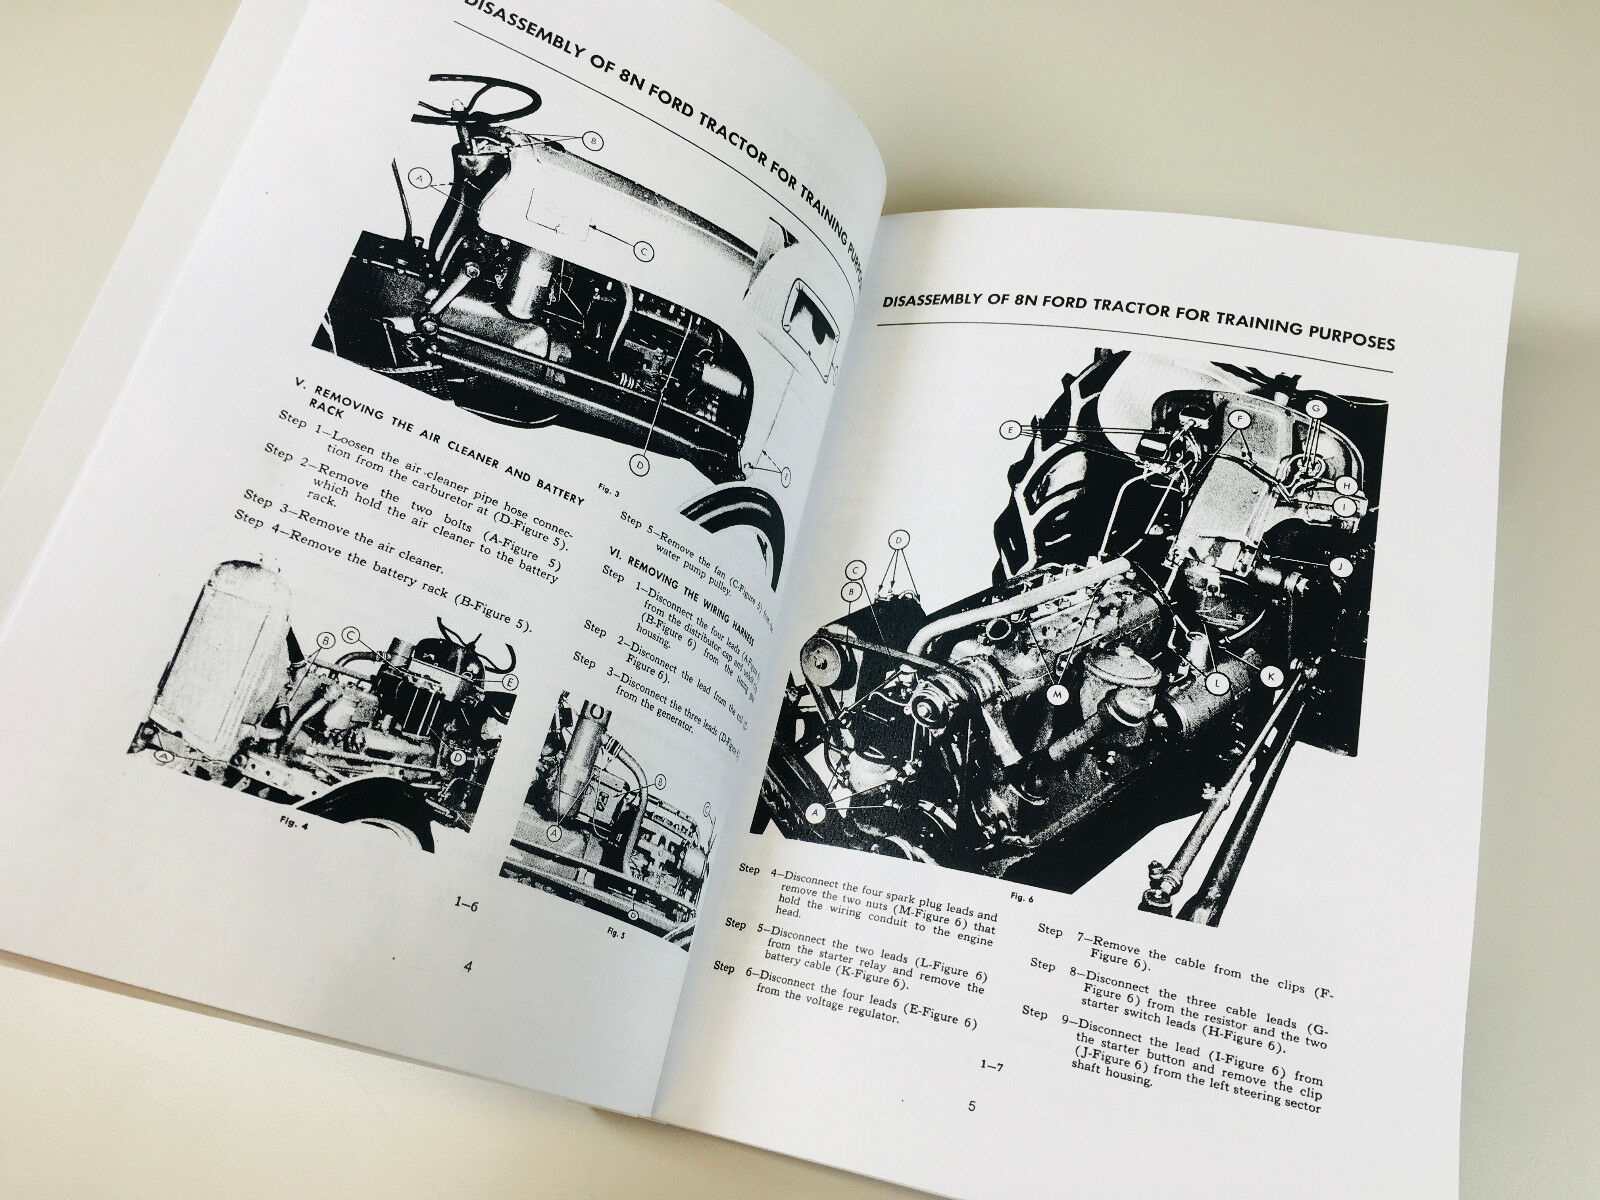 Ford 8n Tractor Shop Manual Service Technical Repair New Print 2n 9n Wiring Diagram For Most Manuals Booklets Really Are Lacking In Carburetor Engine Overhaul How To Info And Even Basic Troubleshooting Methods The